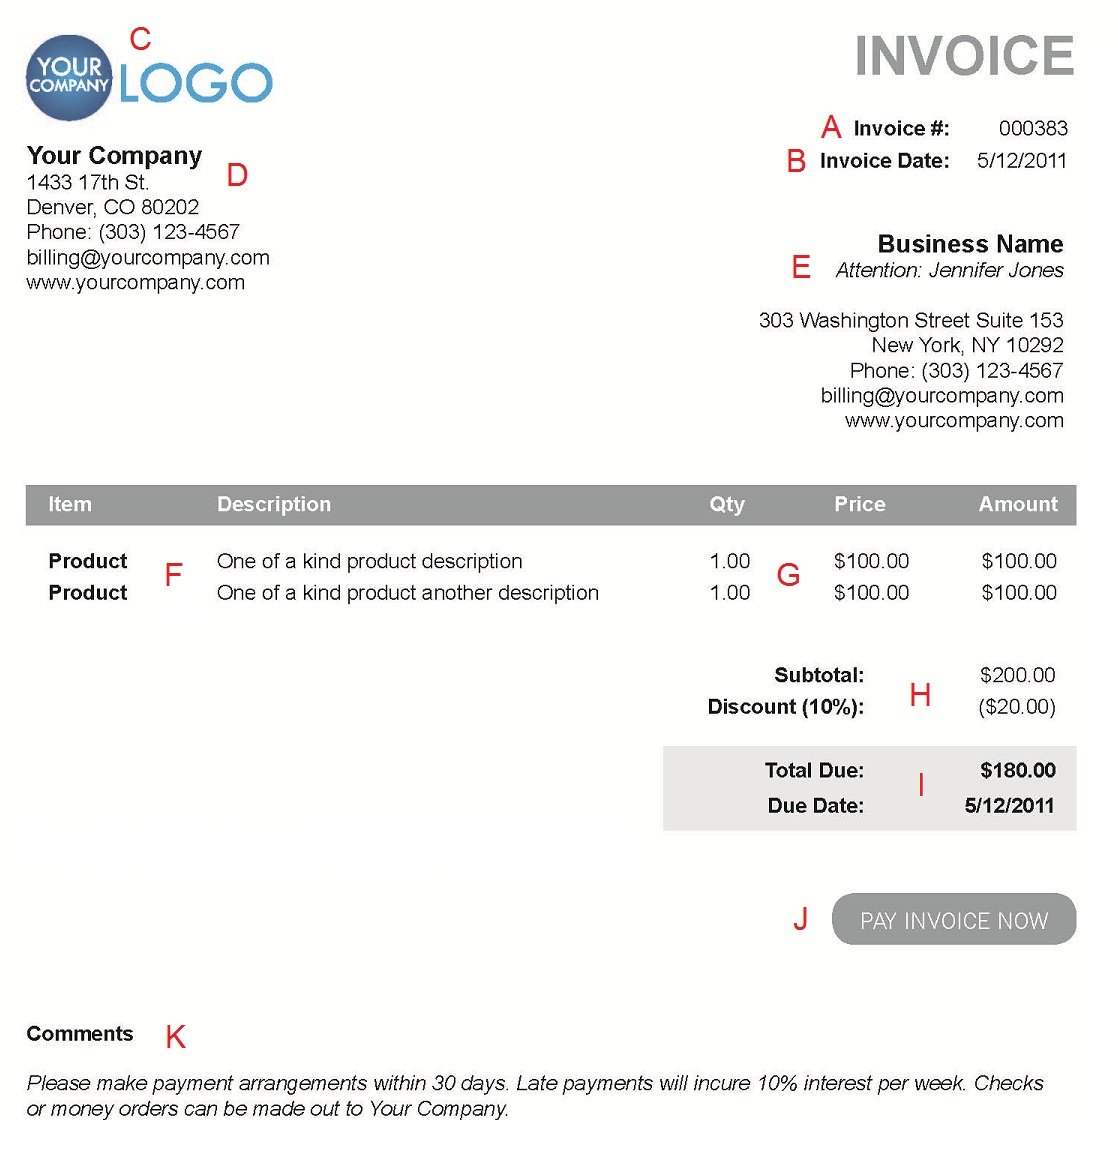 Totallocalus  Prepossessing The  Different Sections Of An Electronic Payment Invoice With Entrancing A  With Delightful Hvac Service Order Invoice Also Contractor Invoice Example In Addition Quicken Invoices And Ariba Invoicing As Well As Invoice Website Additionally Invoice Management System From Paysimplecom With Totallocalus  Entrancing The  Different Sections Of An Electronic Payment Invoice With Delightful A  And Prepossessing Hvac Service Order Invoice Also Contractor Invoice Example In Addition Quicken Invoices From Paysimplecom